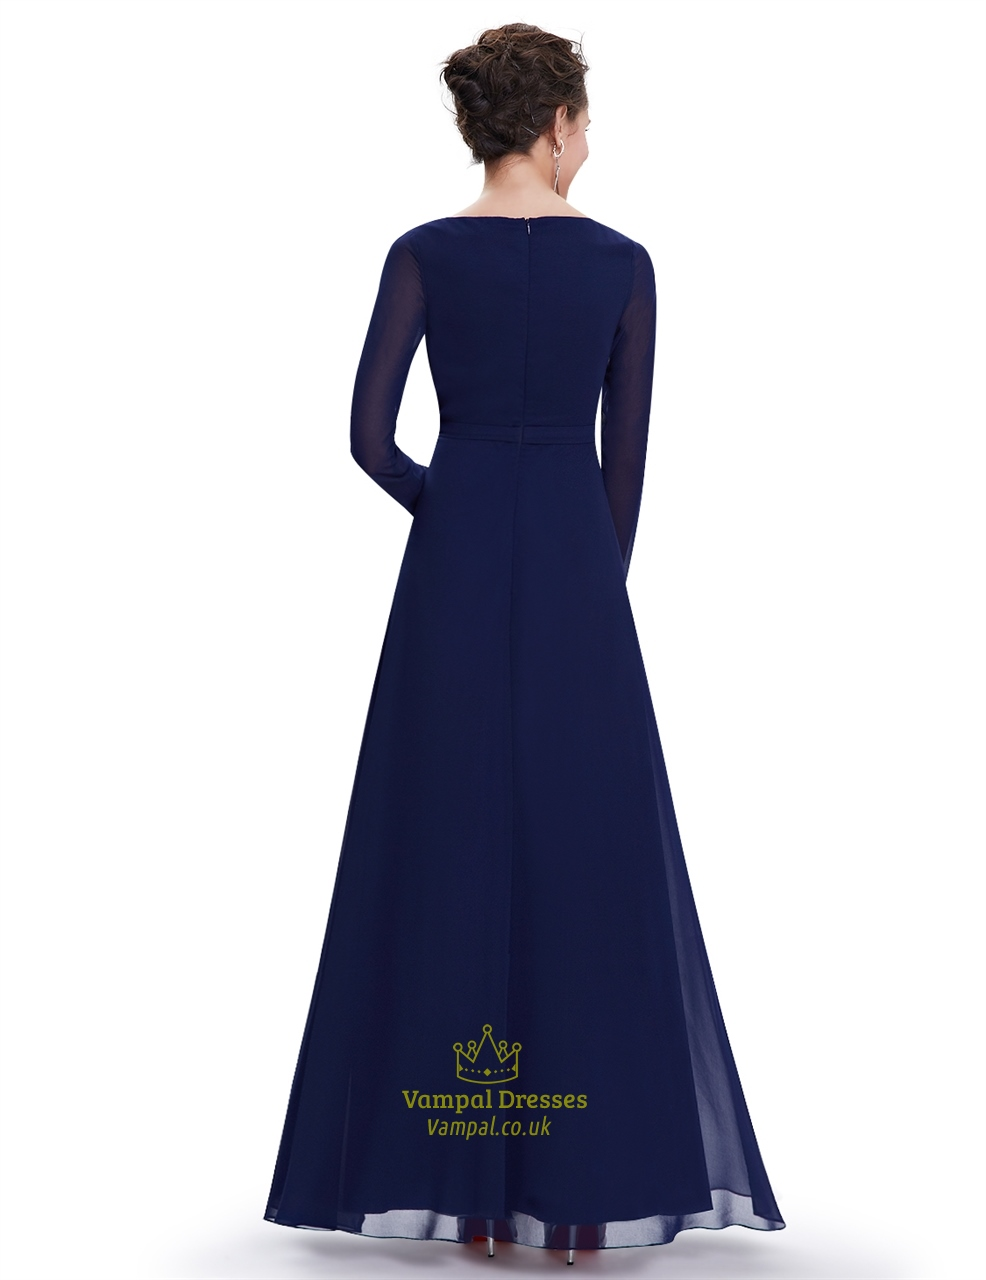 0008756_navy_blue_chiffon_sequin_mother_of_the_bride_dress_with_long_sleeves_wm